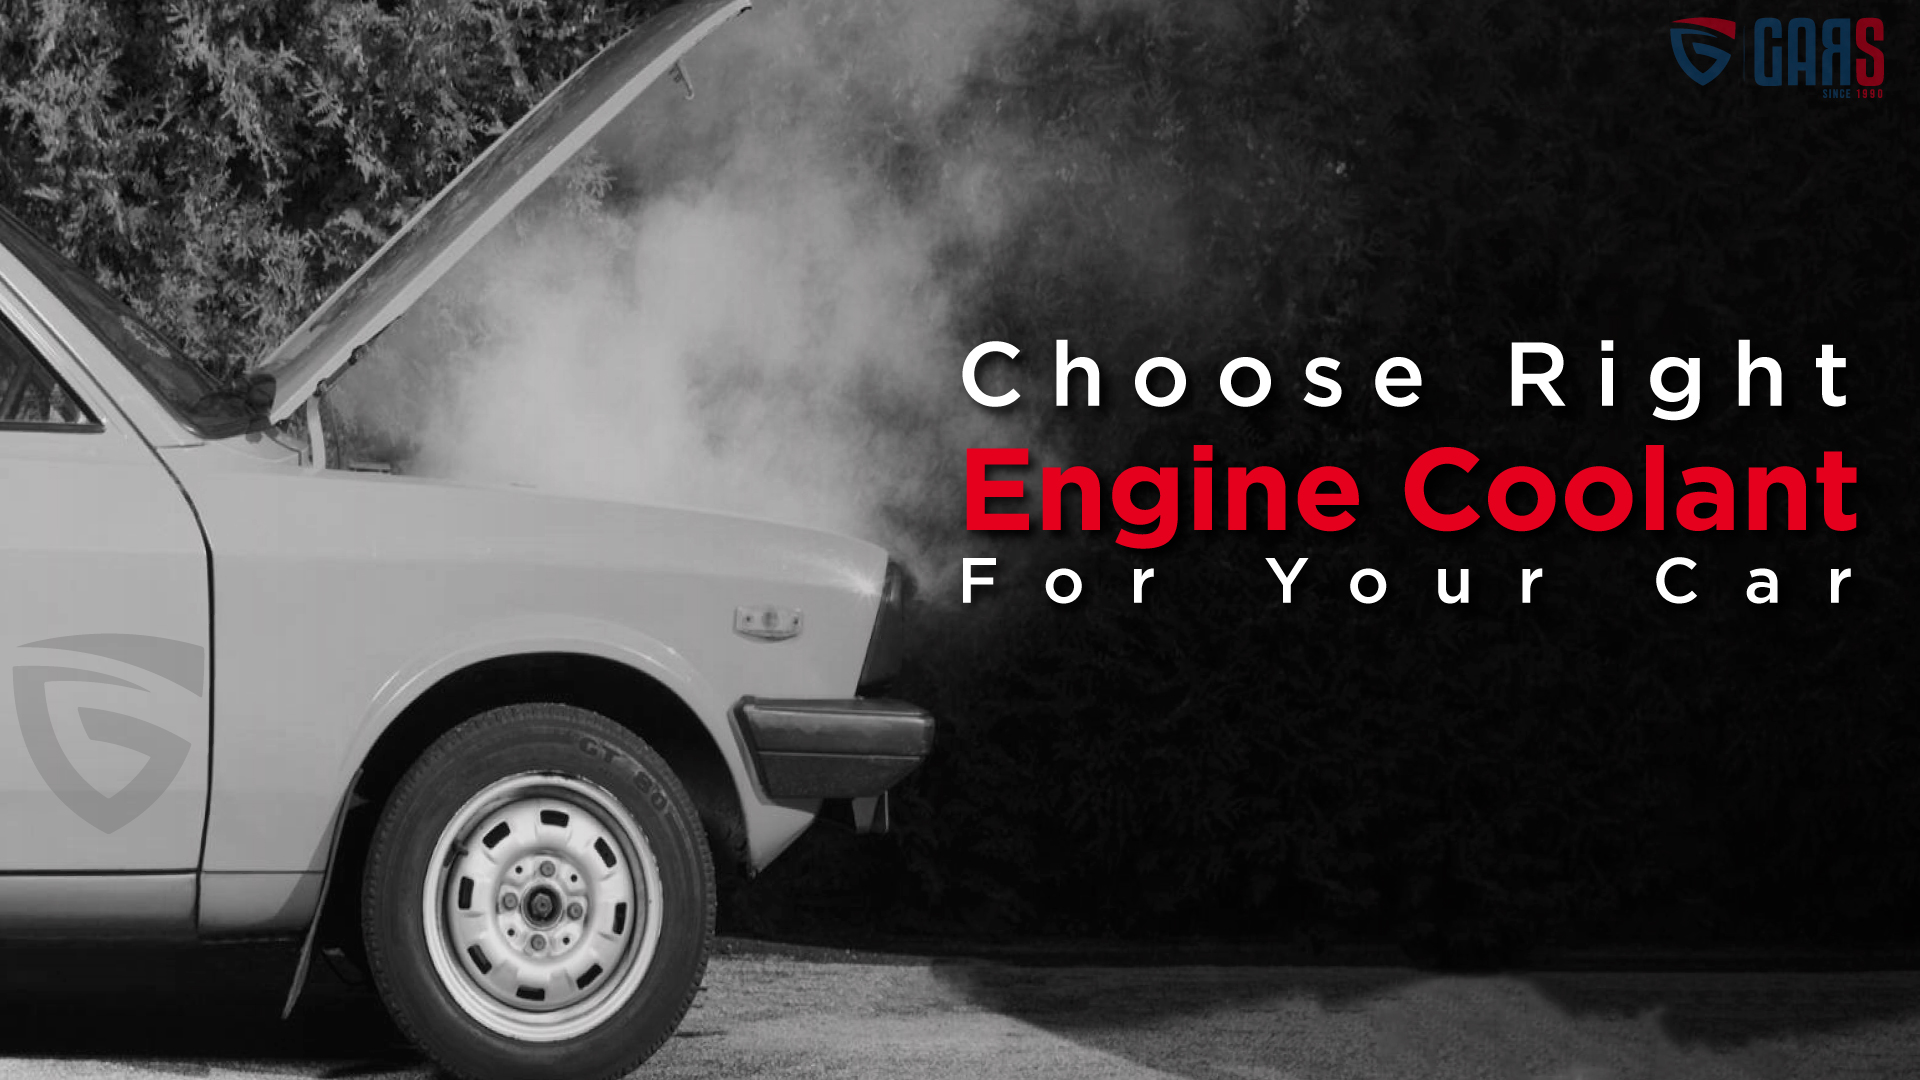 Engine Coolant: Choose Right Coolant For Your Engine